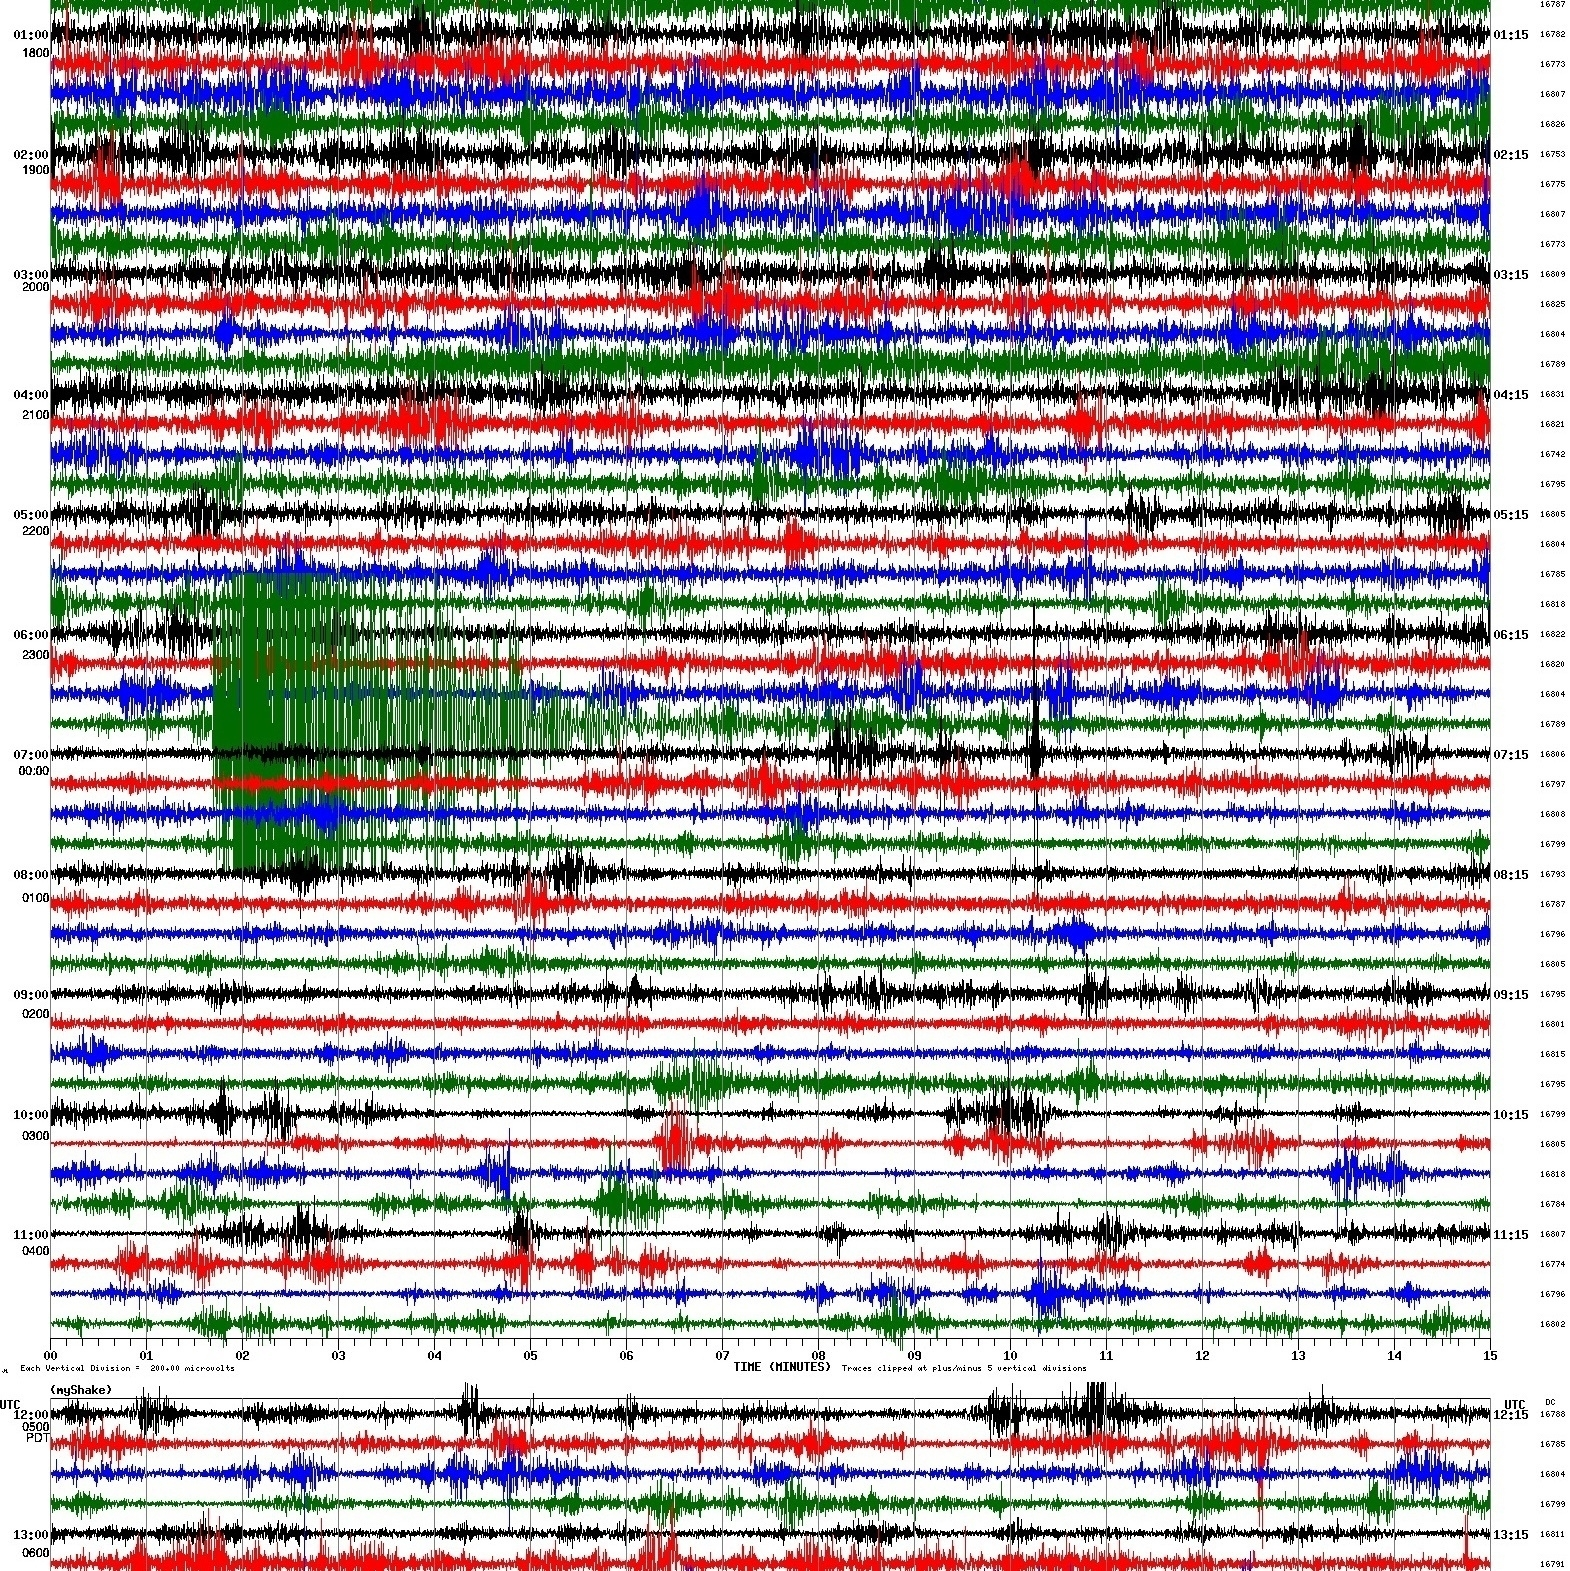 helicorder of M5.1 earthquake